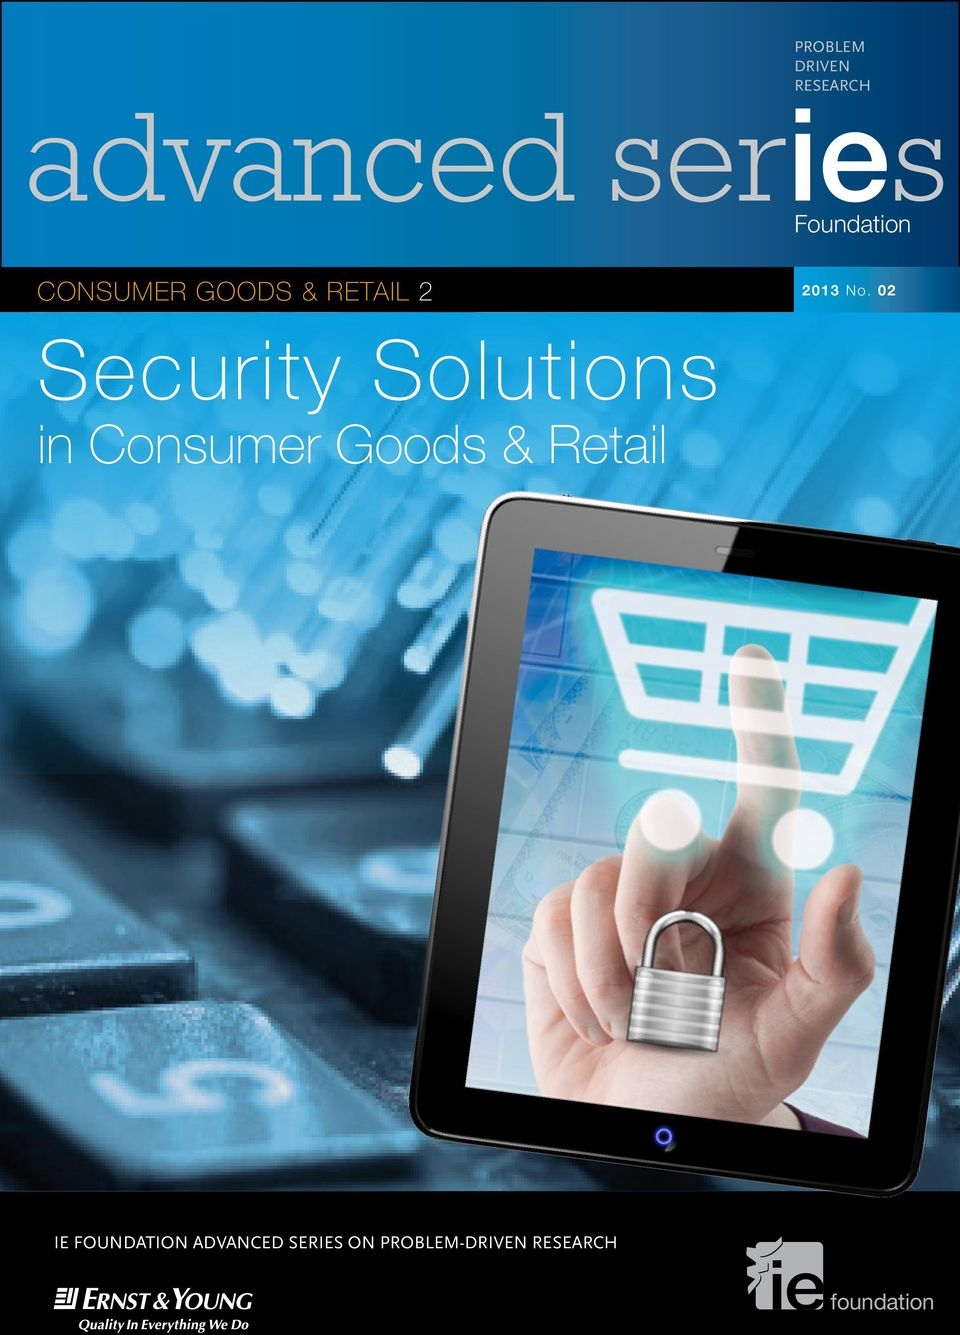 02 Security Solutions in Consumer Goods & Retail